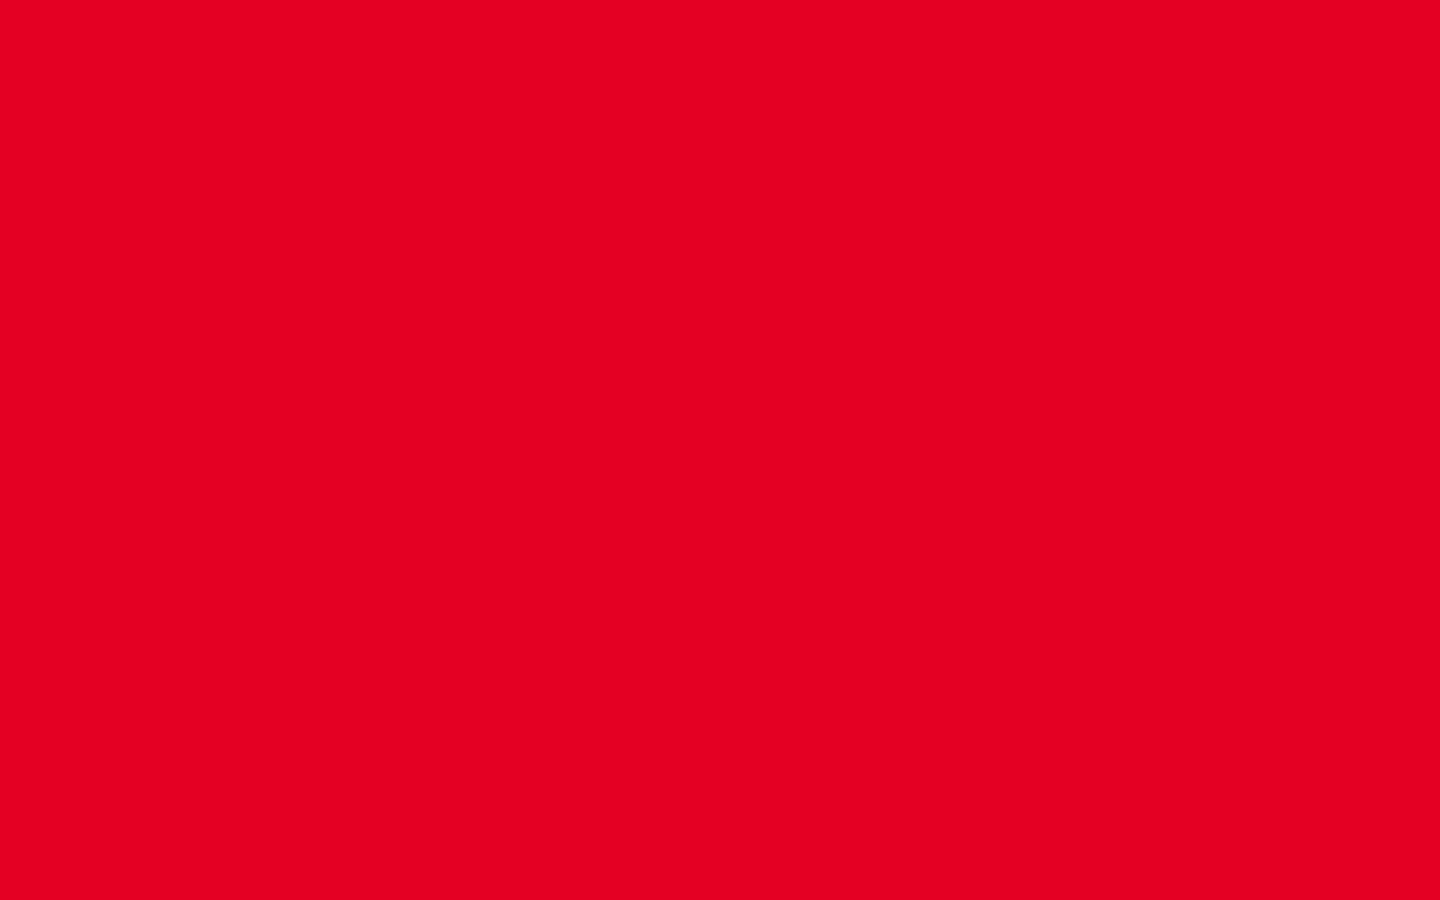 1440x900 Cadmium Red Solid Color Background